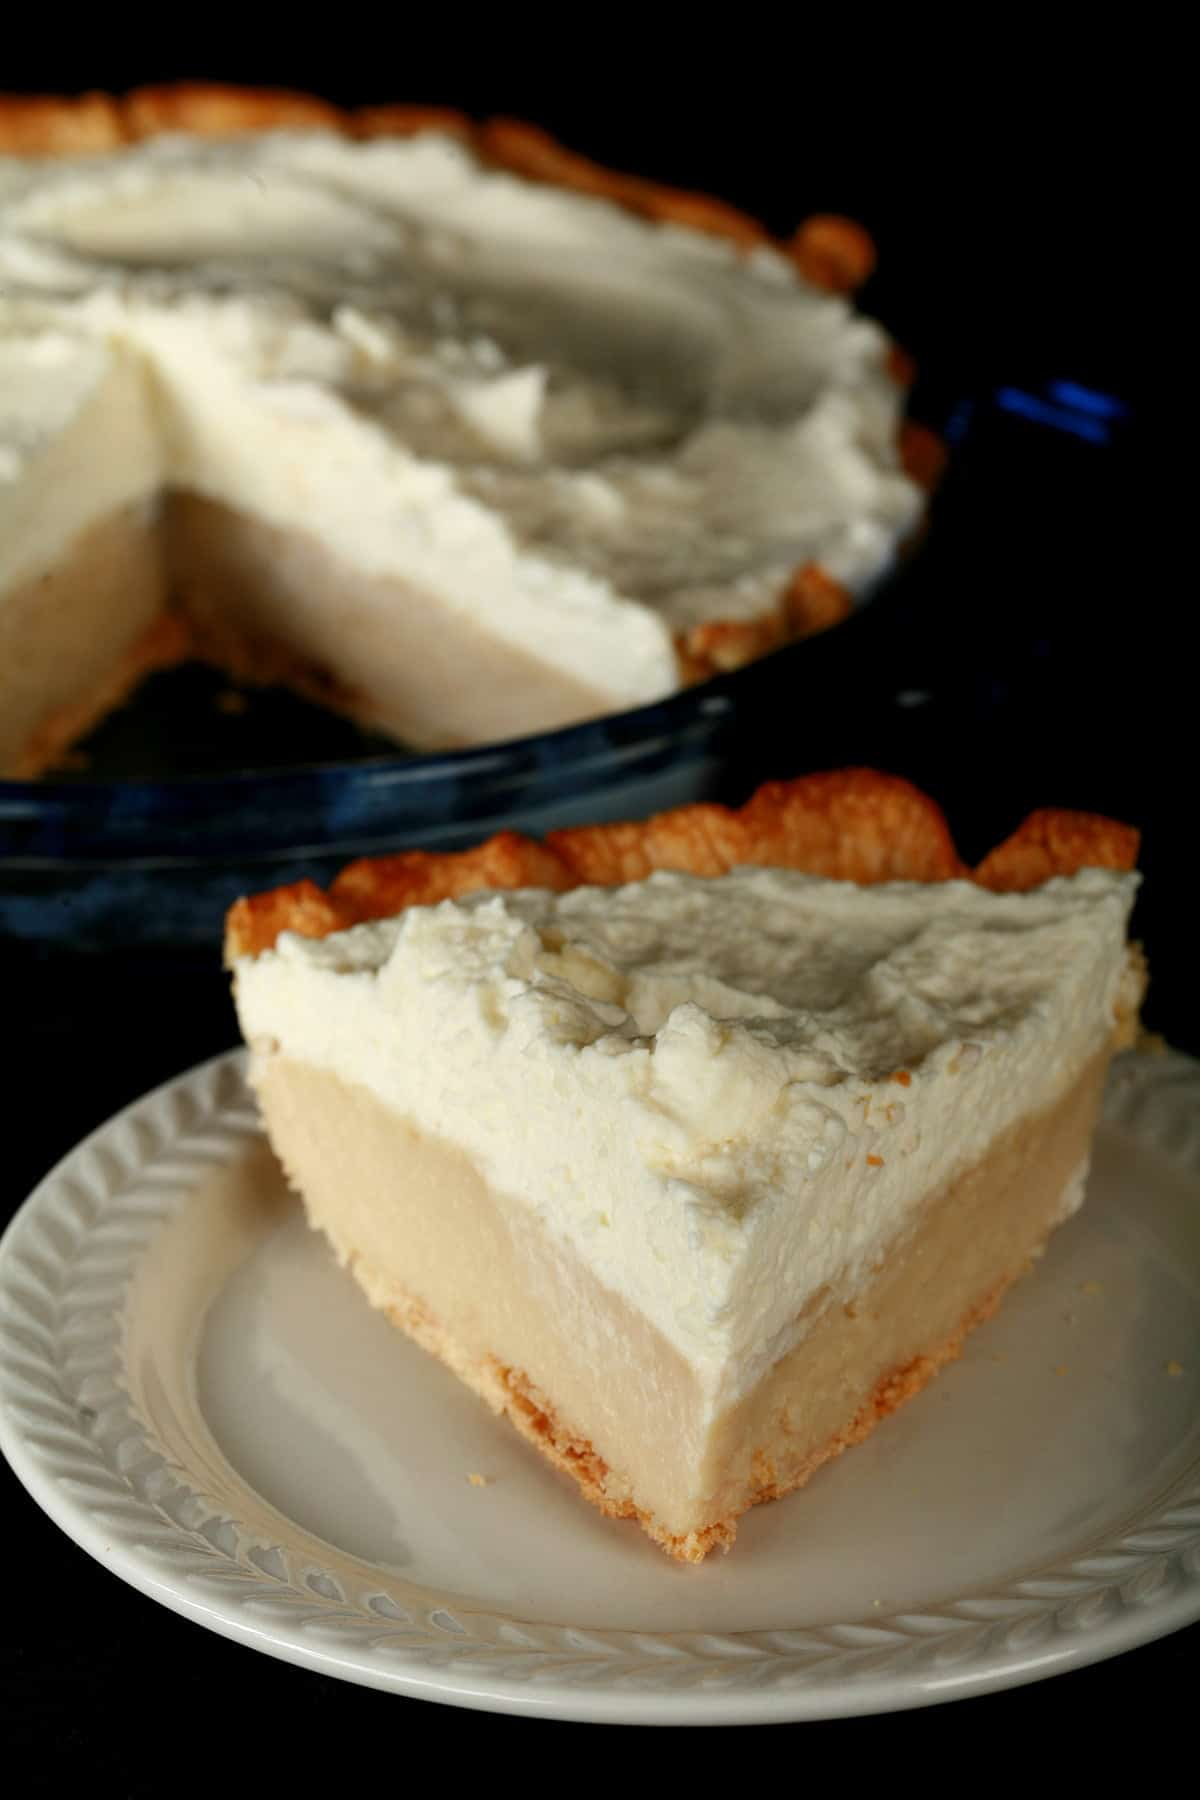 A Gluten-Free Earl Grey Pie - A greige custard pie, topped with whipped cream.